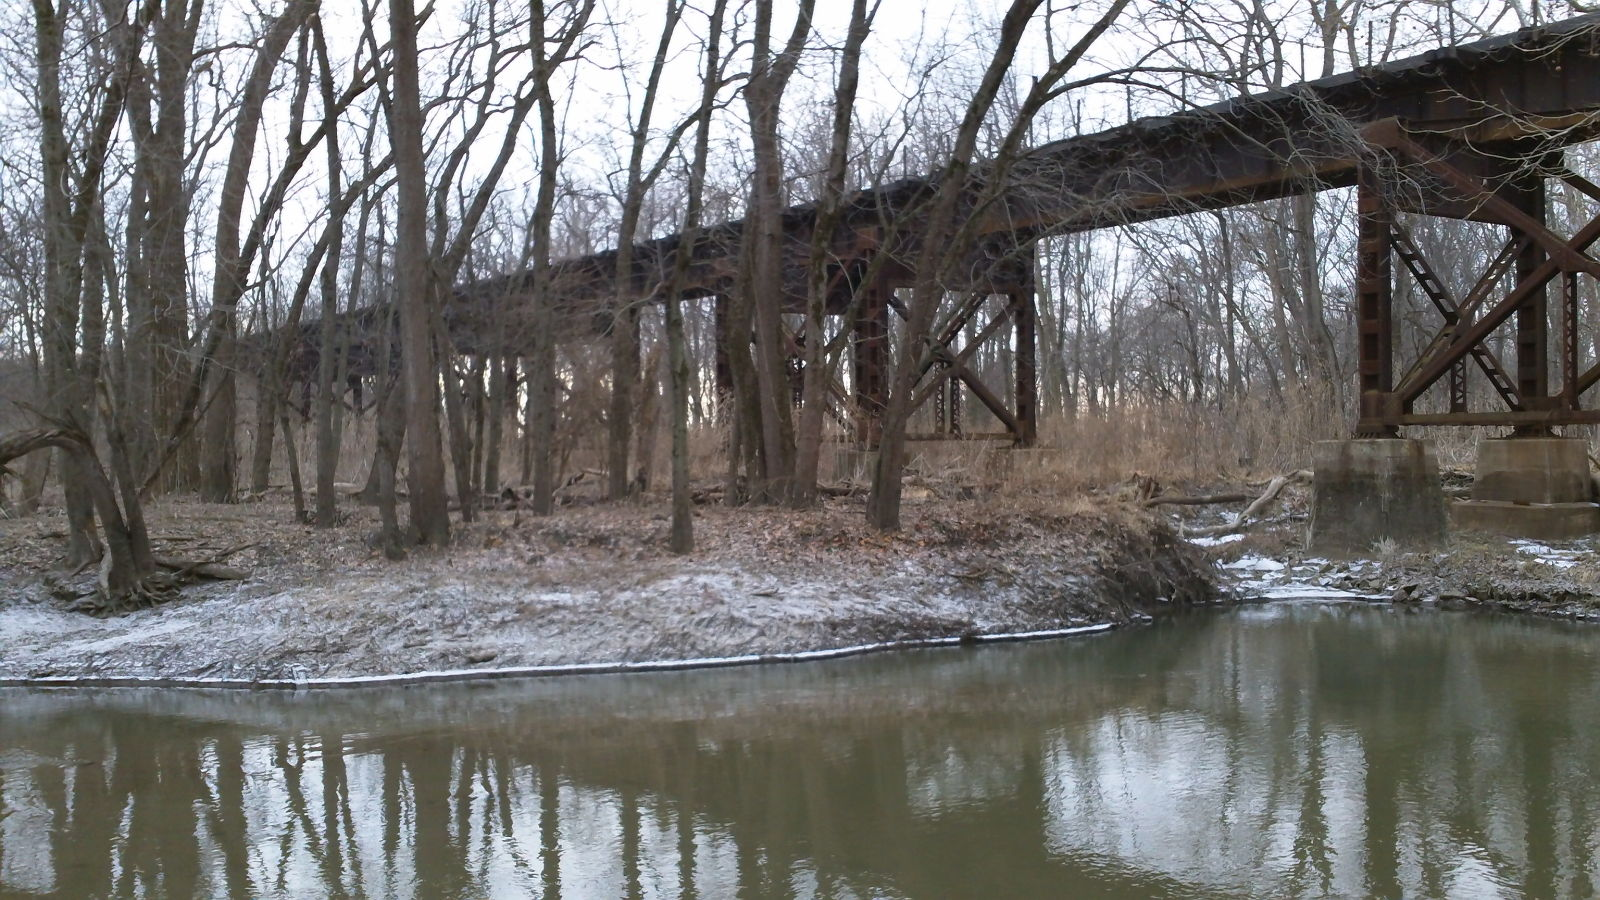 Illinois vermilion county armstrong - Photo